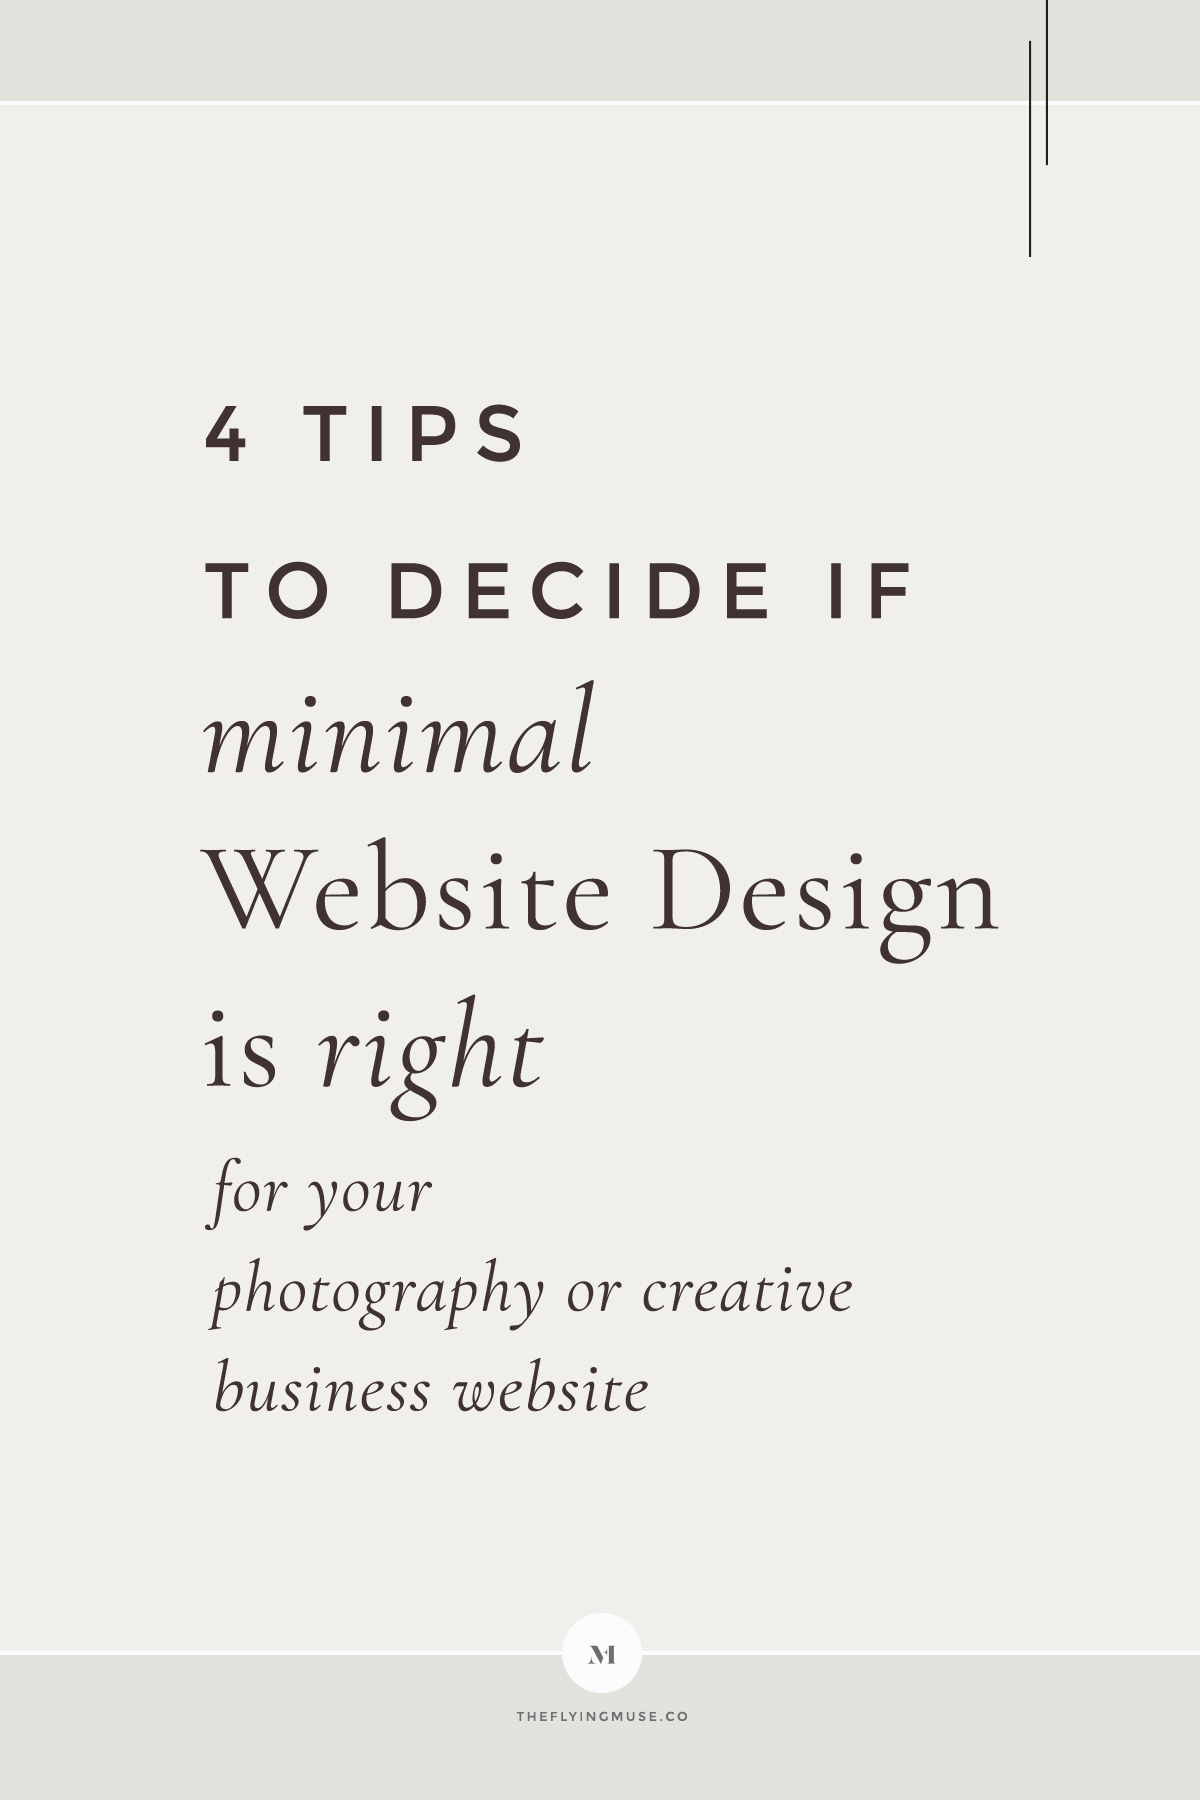 Tips How to Decide if Minimal Website Design is Right for your Photography or Creative business